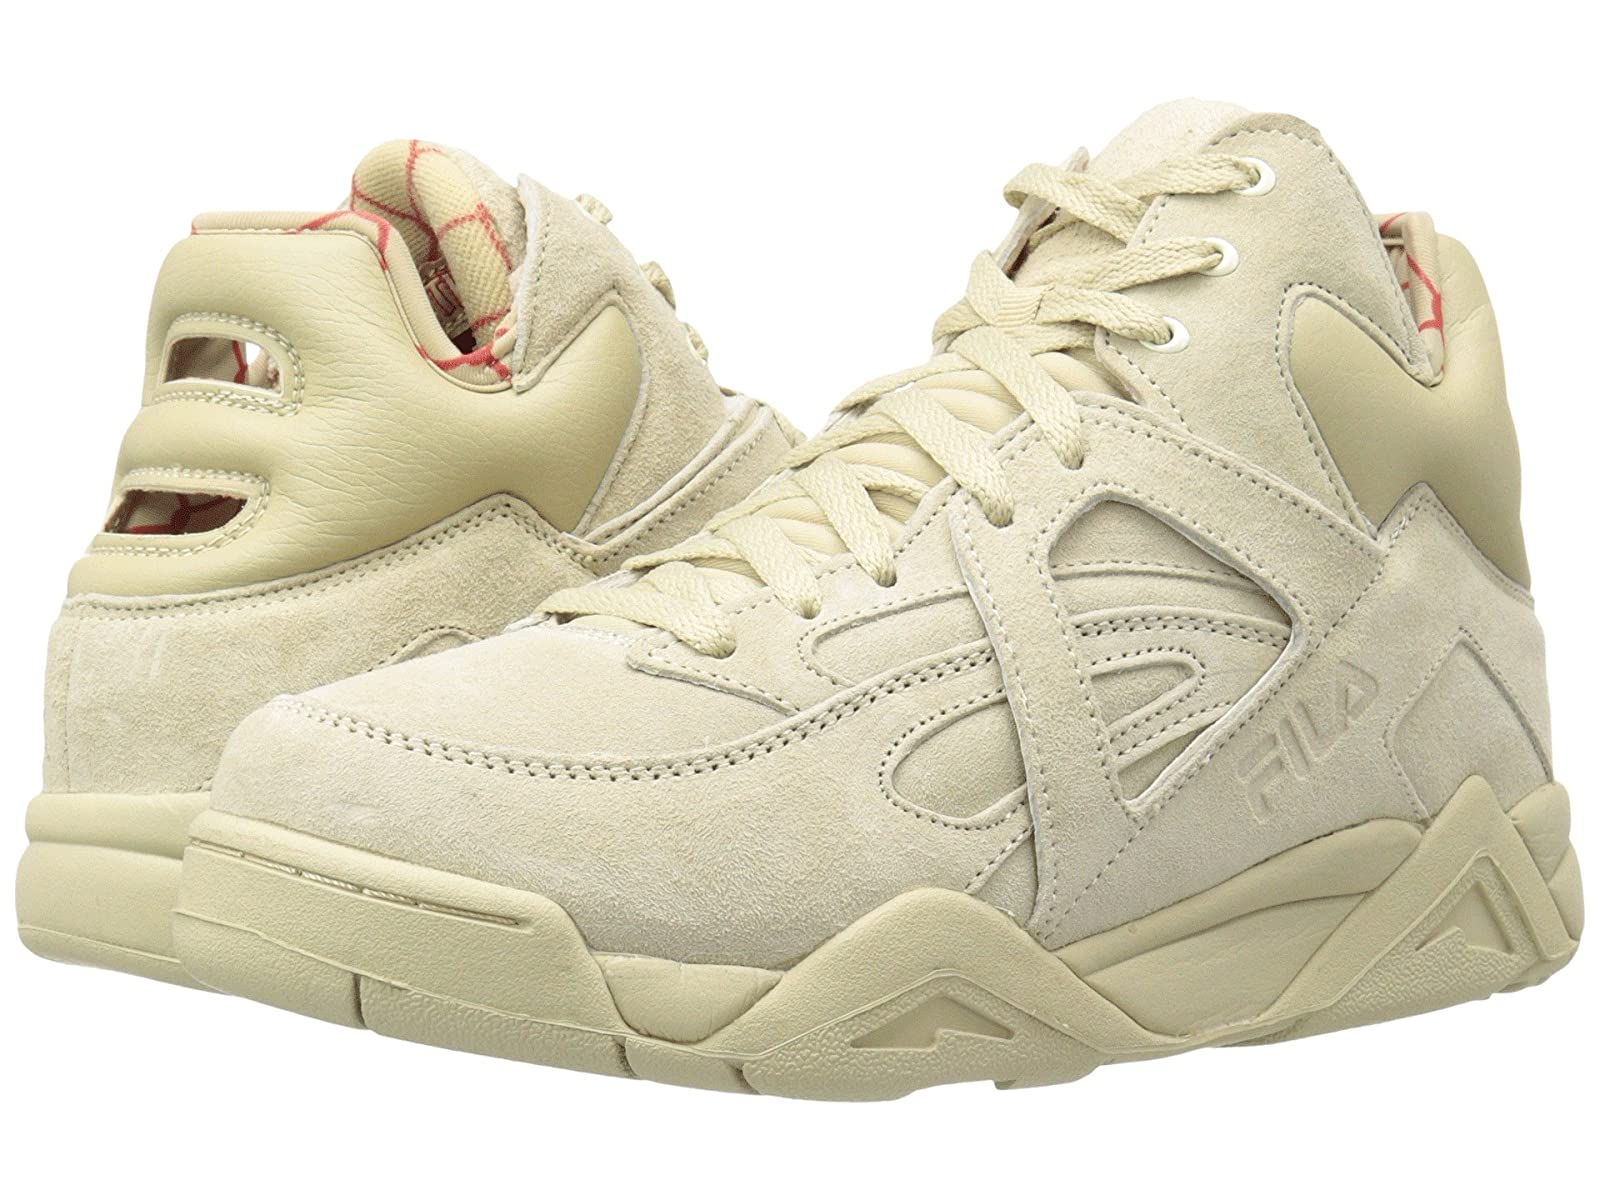 Fila The CageAtmospheric grades have affordable shoes